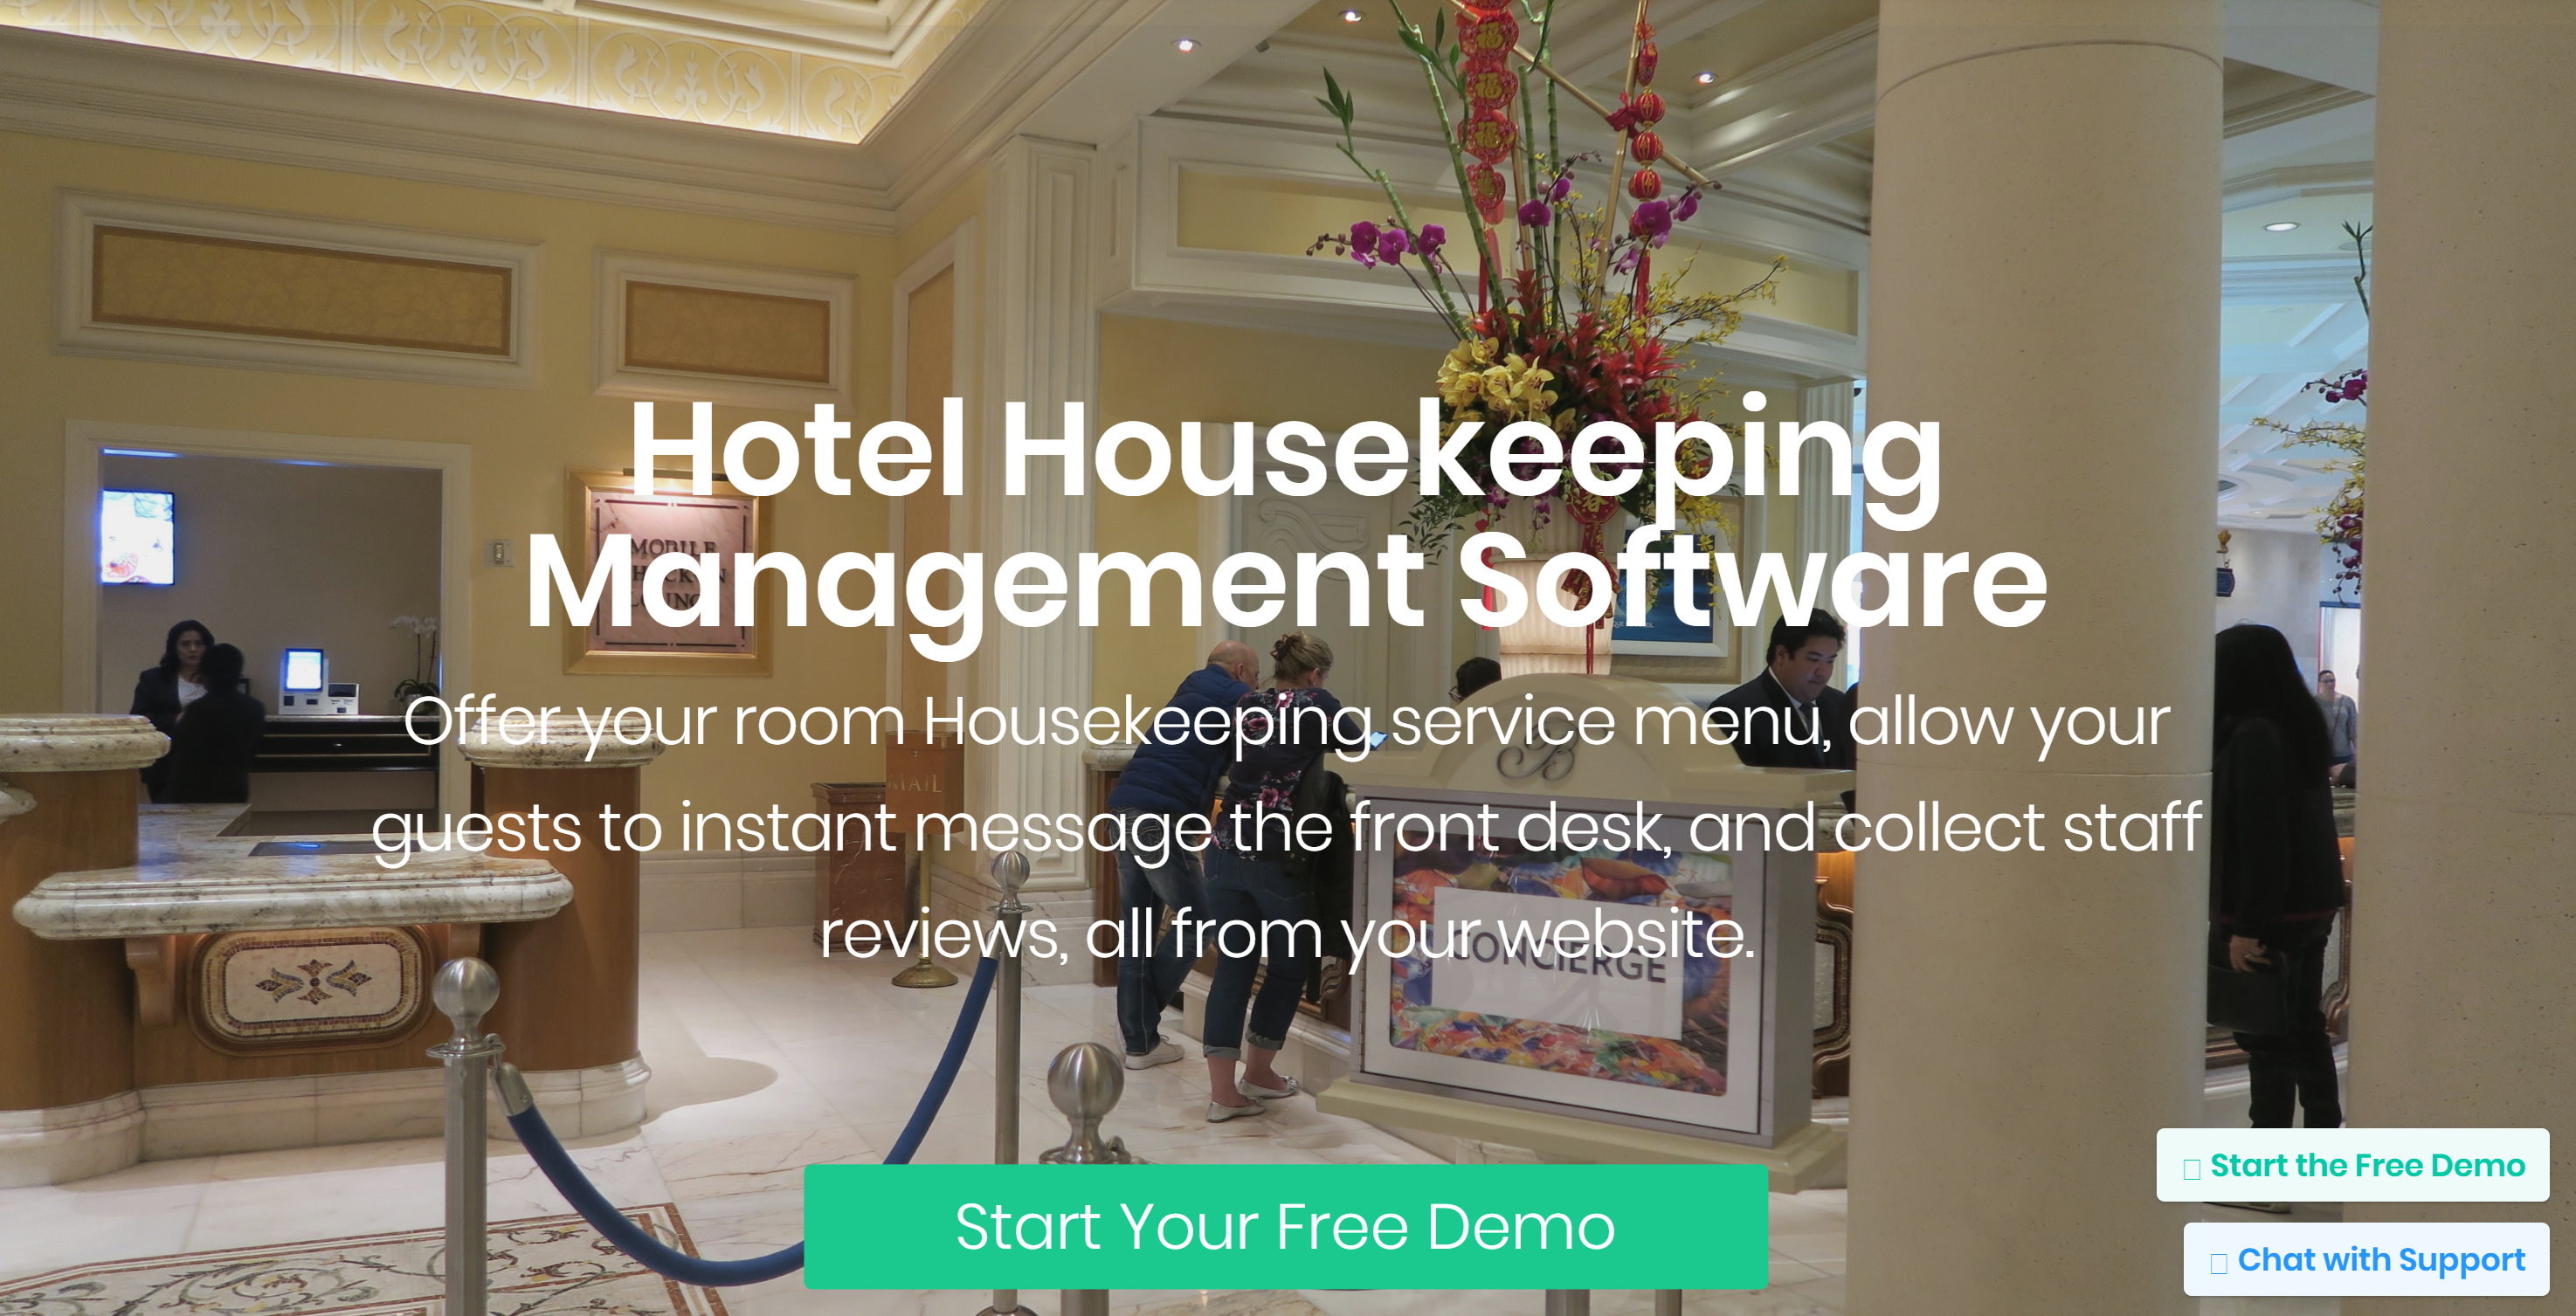 Video Training on How to Enable Hotel Housekeeping Software for Hotel PMS.